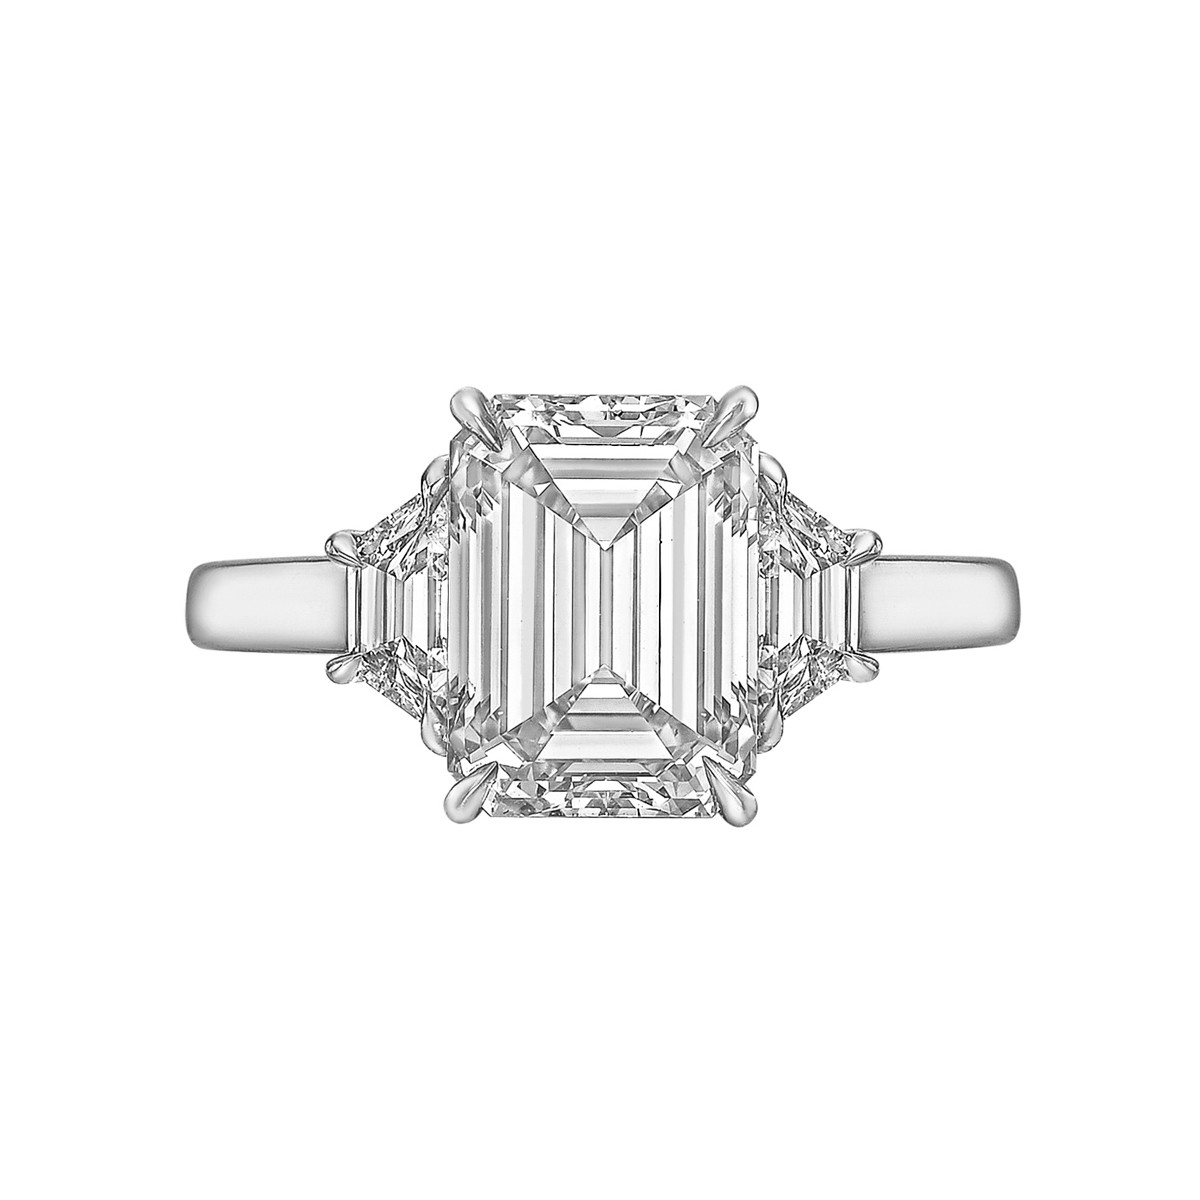 4.01ct Emerald-Cut Diamond Ring (F/VS2)